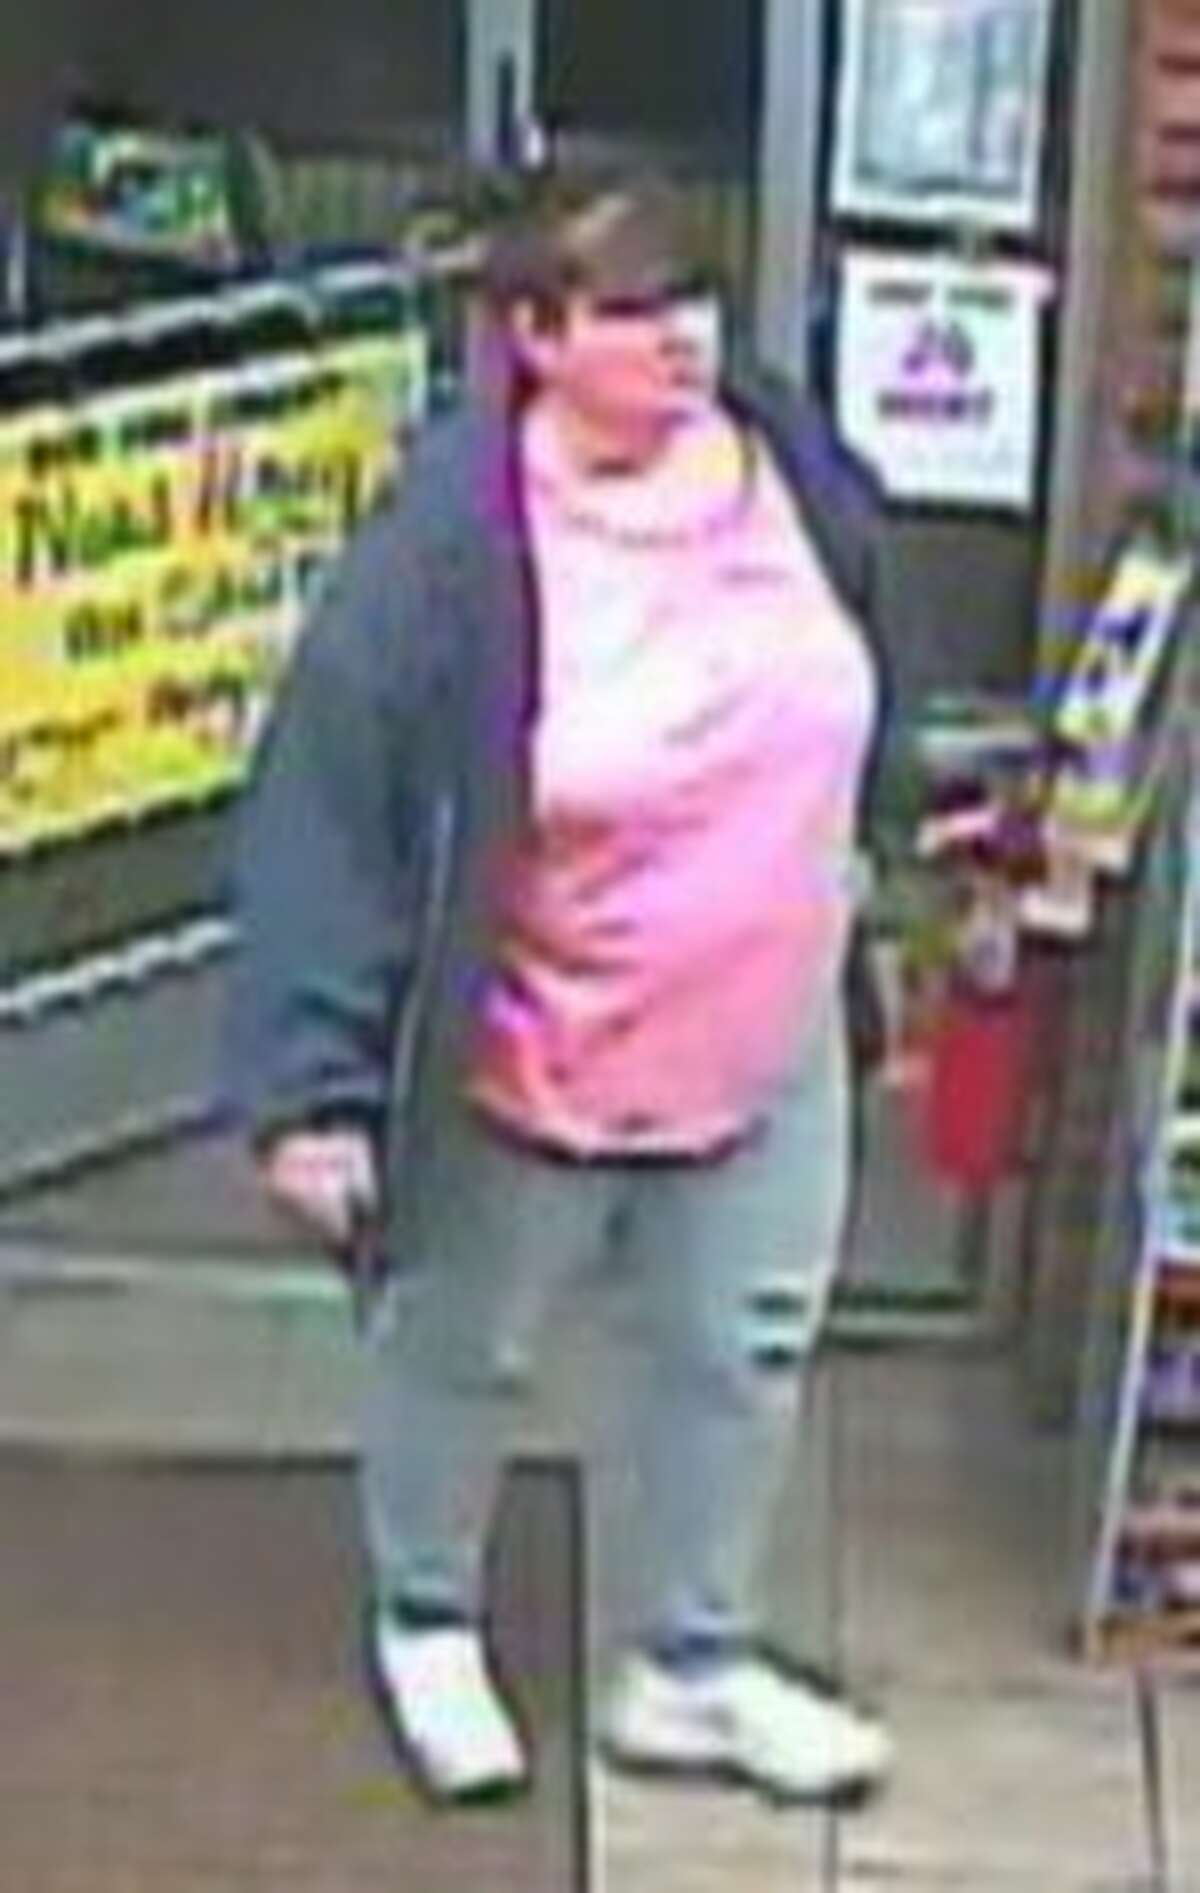 This is one of two people the Bethlehem Police are trying to identify as part of a larceny investigation. (Provided photo)